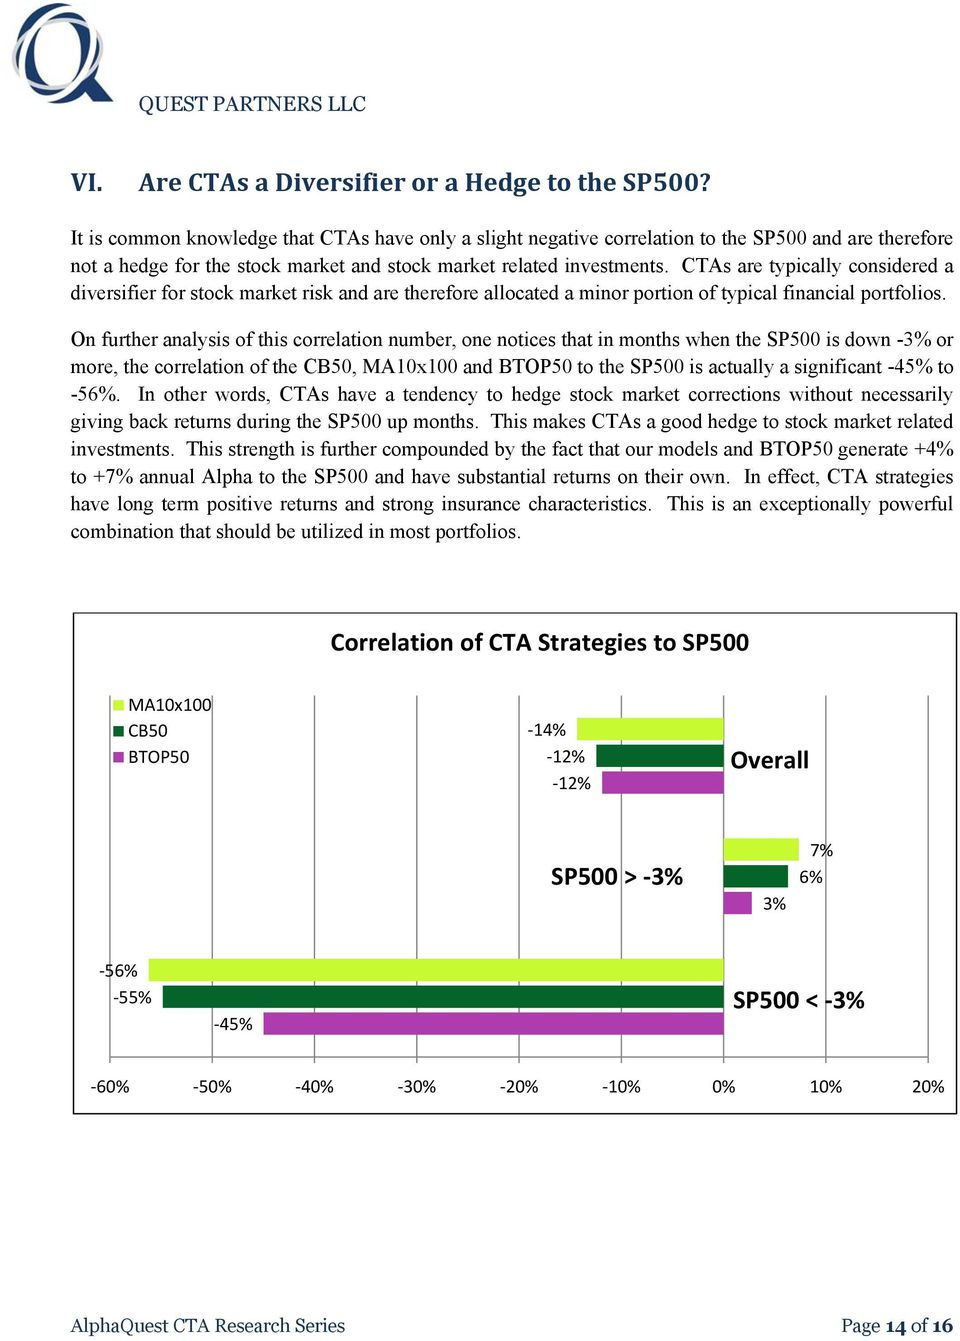 CTAs are typically considered a diversifier for stock market risk and are therefore allocated a minor portion of typical financial portfolios.